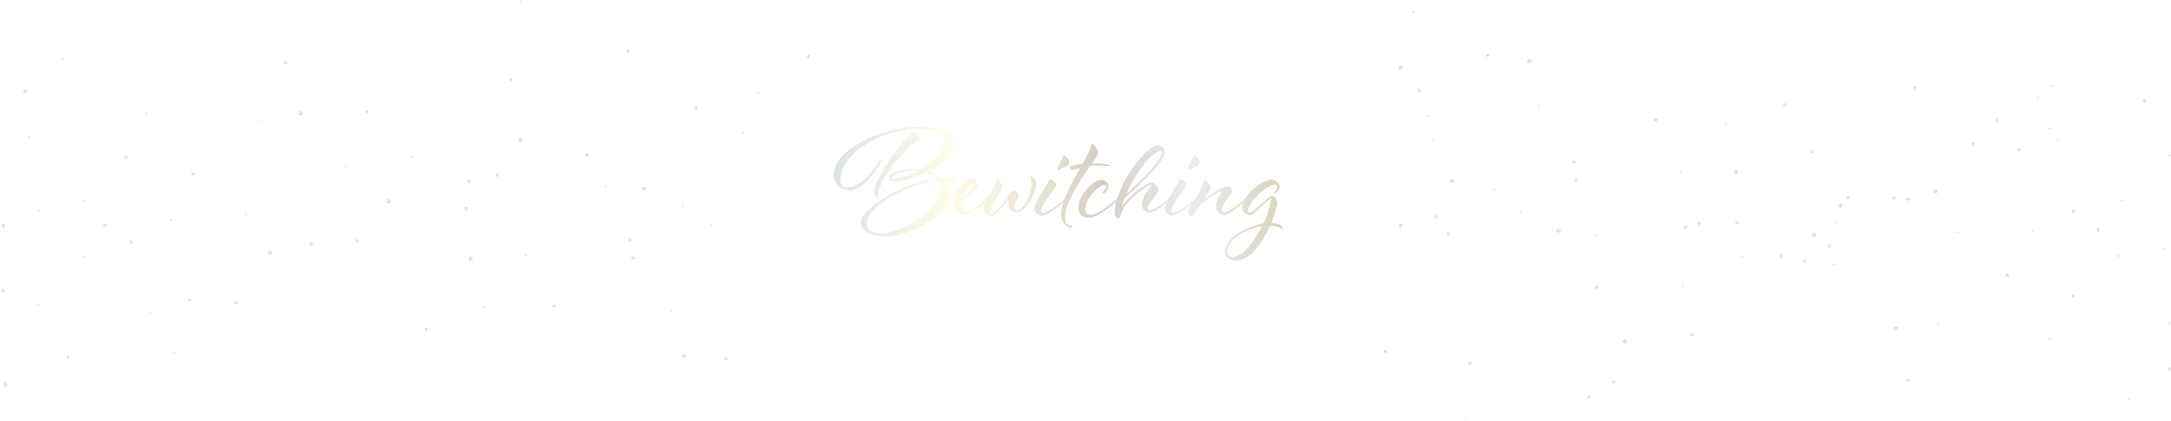 Bewitching Basements - Title